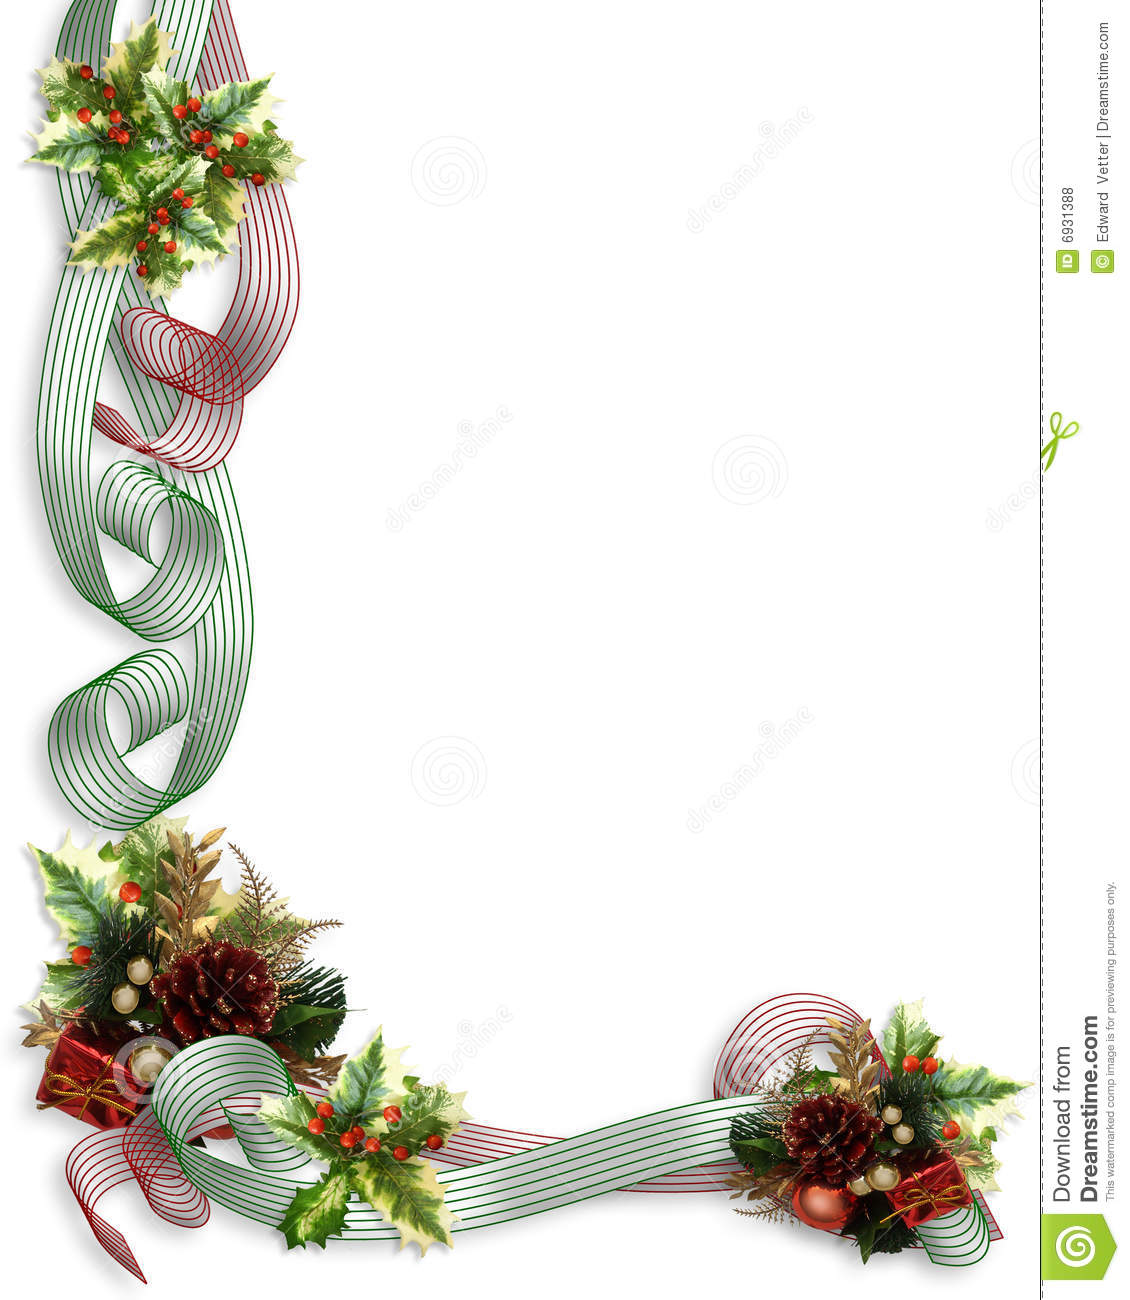 Christmas Border Ribbons And Holly Royalty Free Stock Photos - Image ...